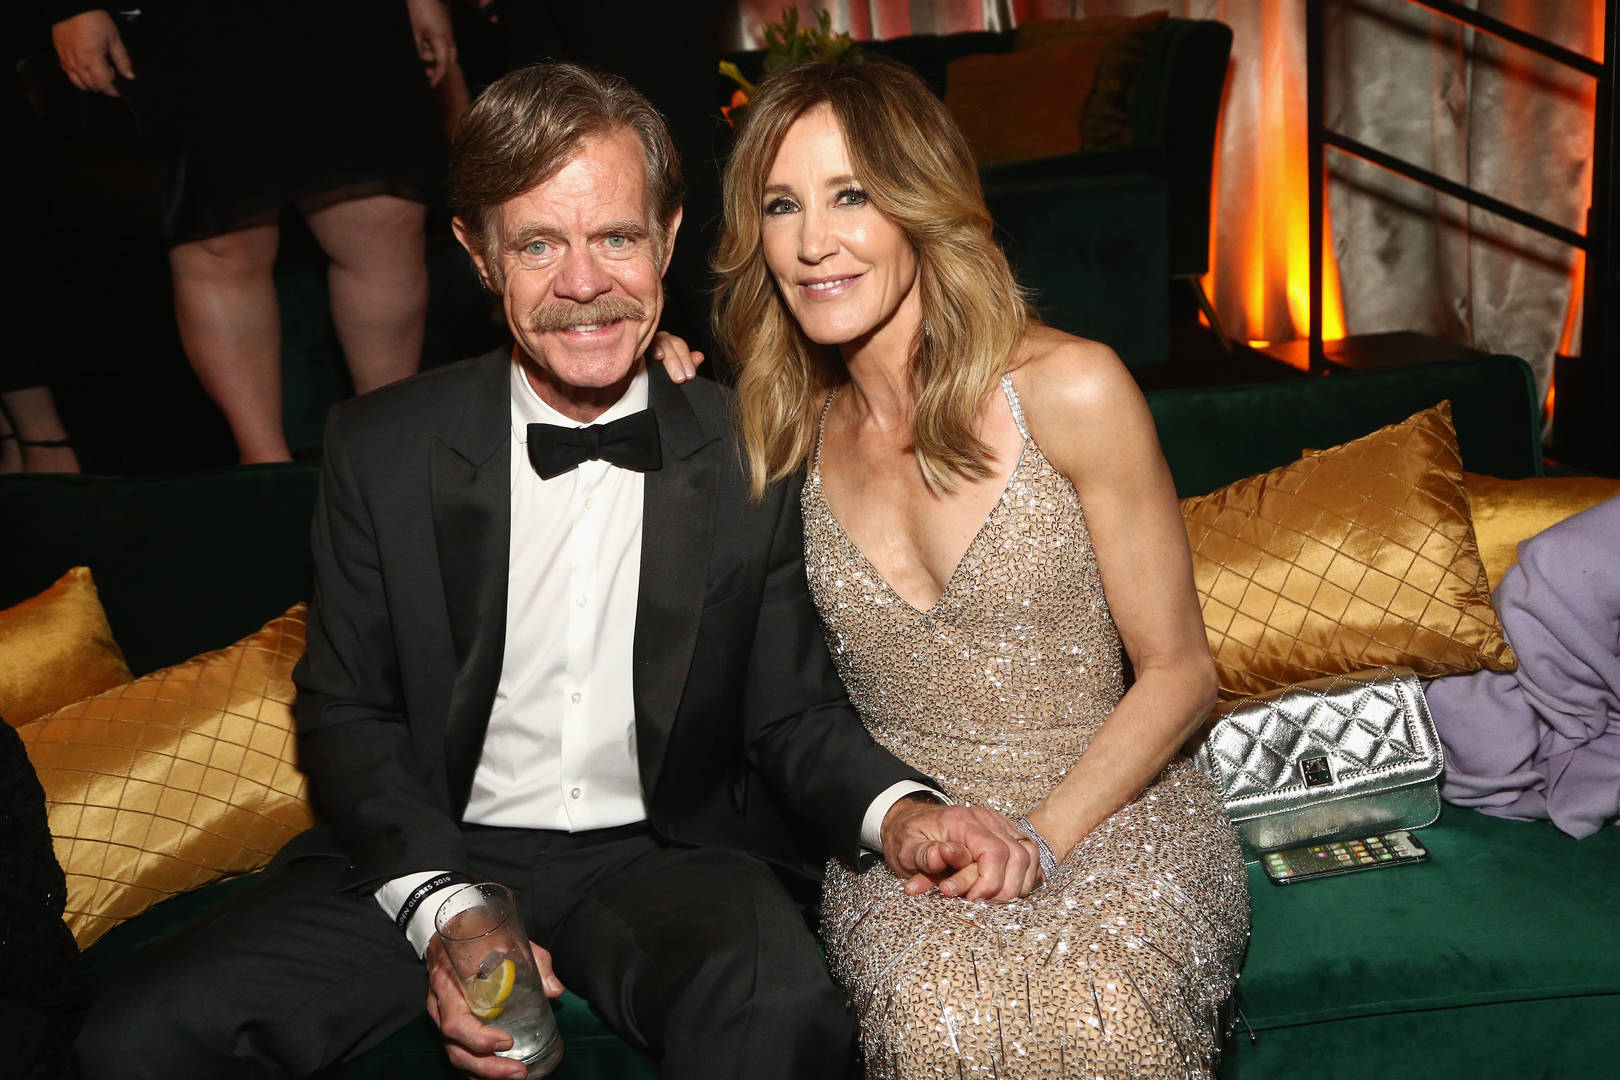 Felicity Huffman Begins 14-Day Sentence For College Bribery Scandal